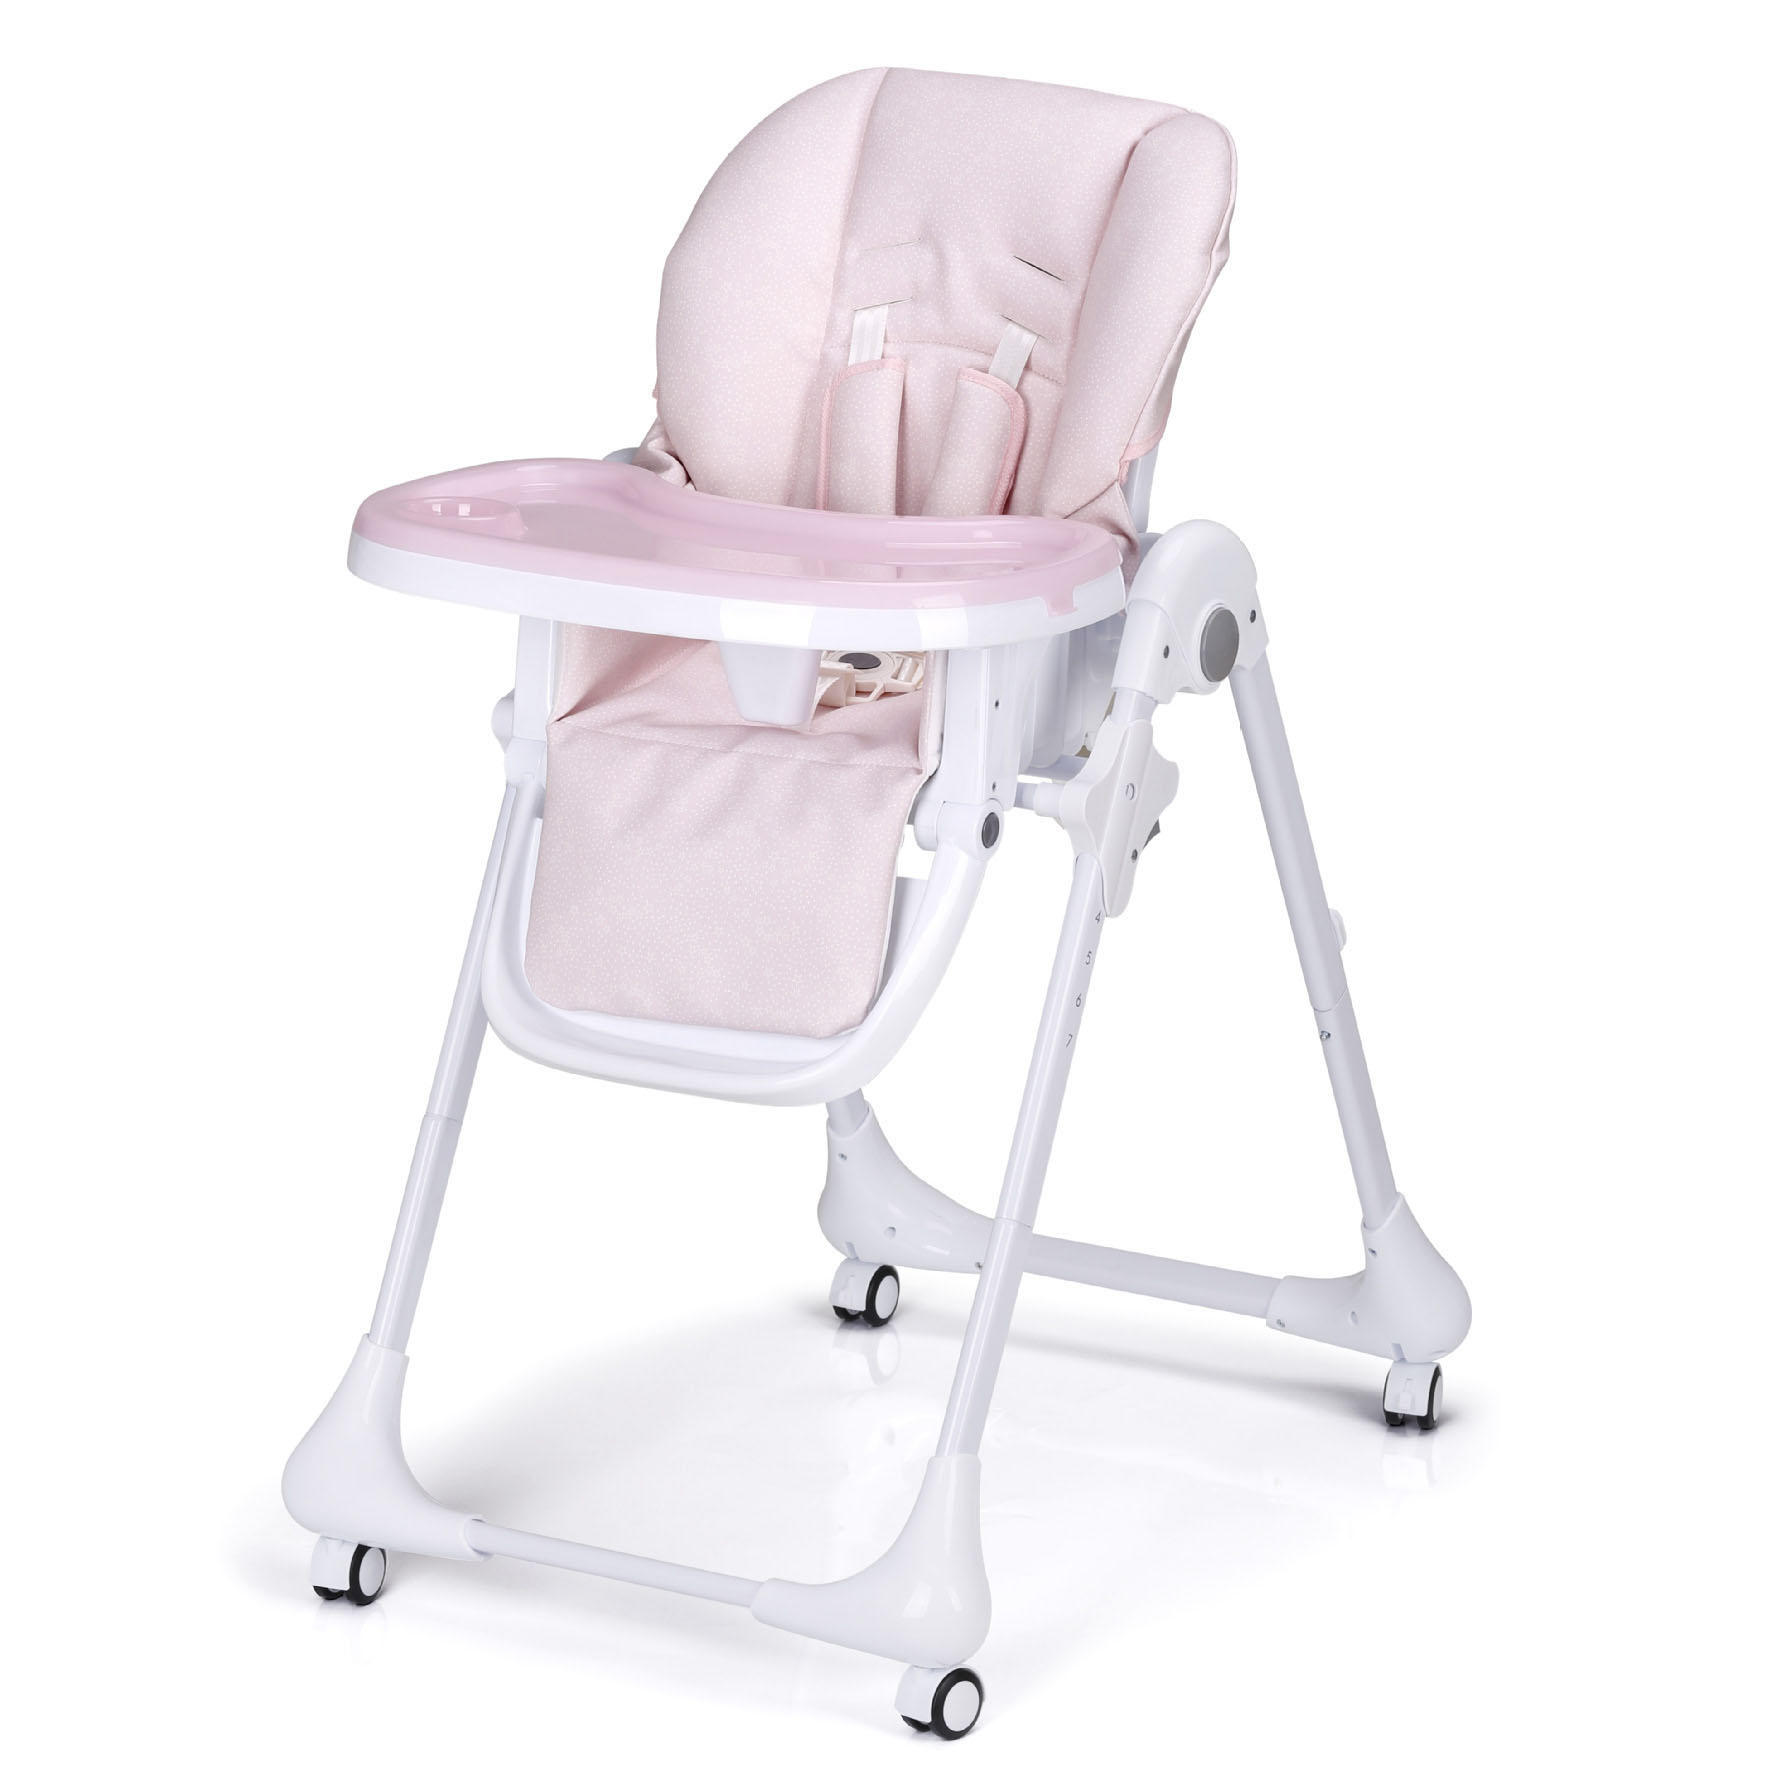 Best inexpensive high chairs comfortable Supply for feeding-1